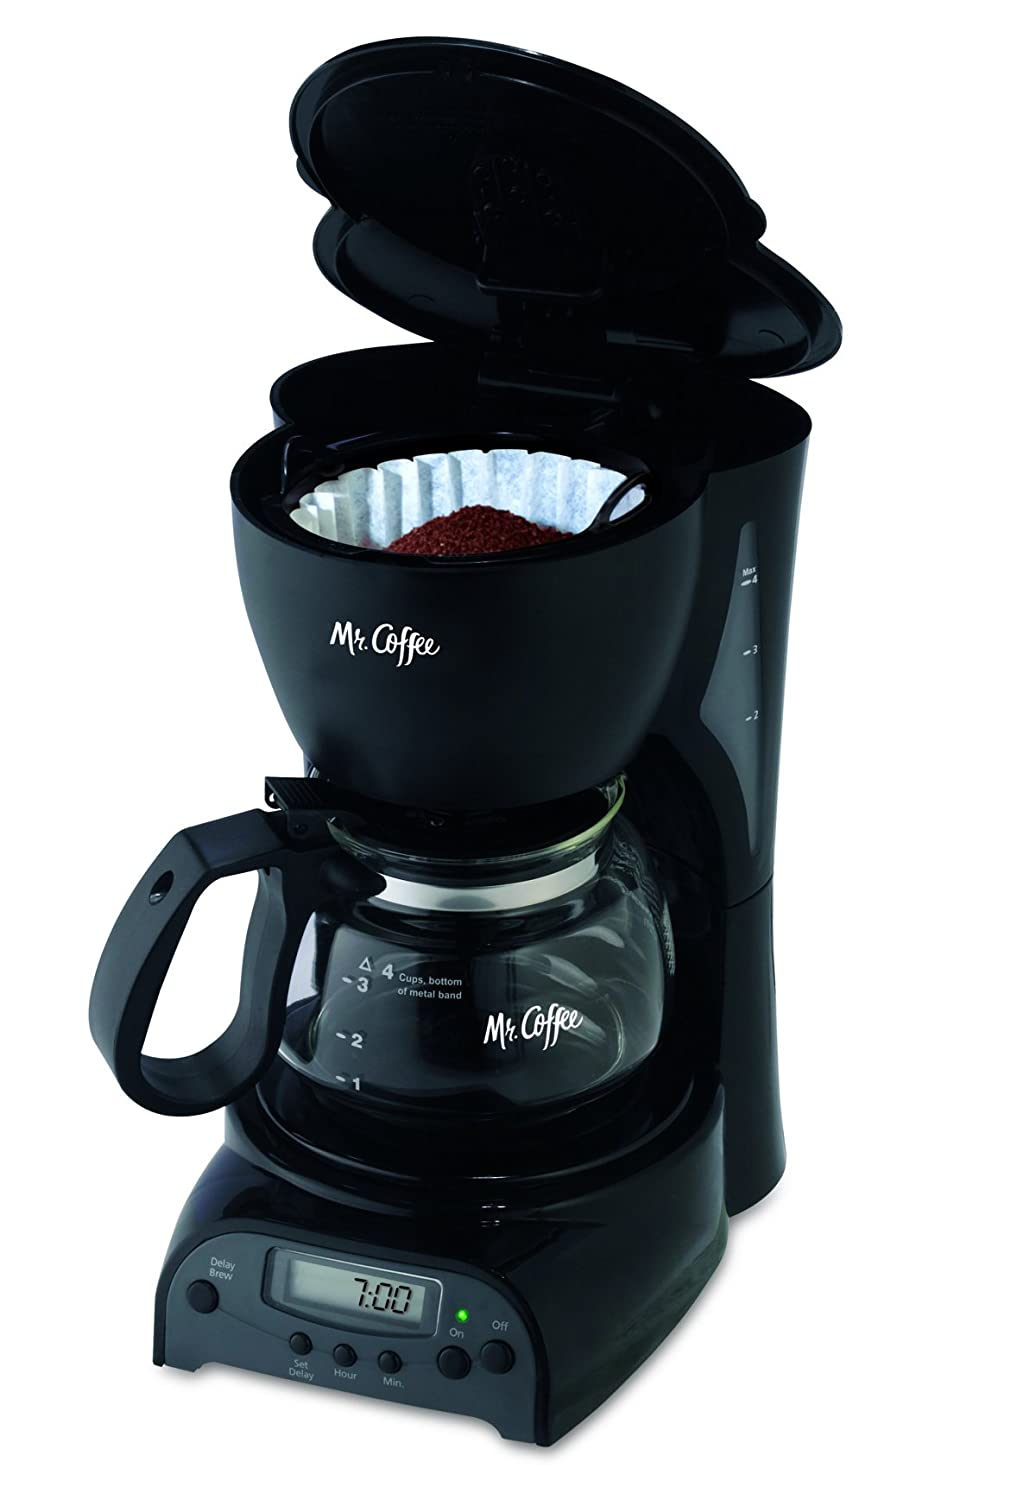 Coffee Maker Reviews 4 Cup : Best 4 Cup Coffee Maker Reviews Caffeine Plz